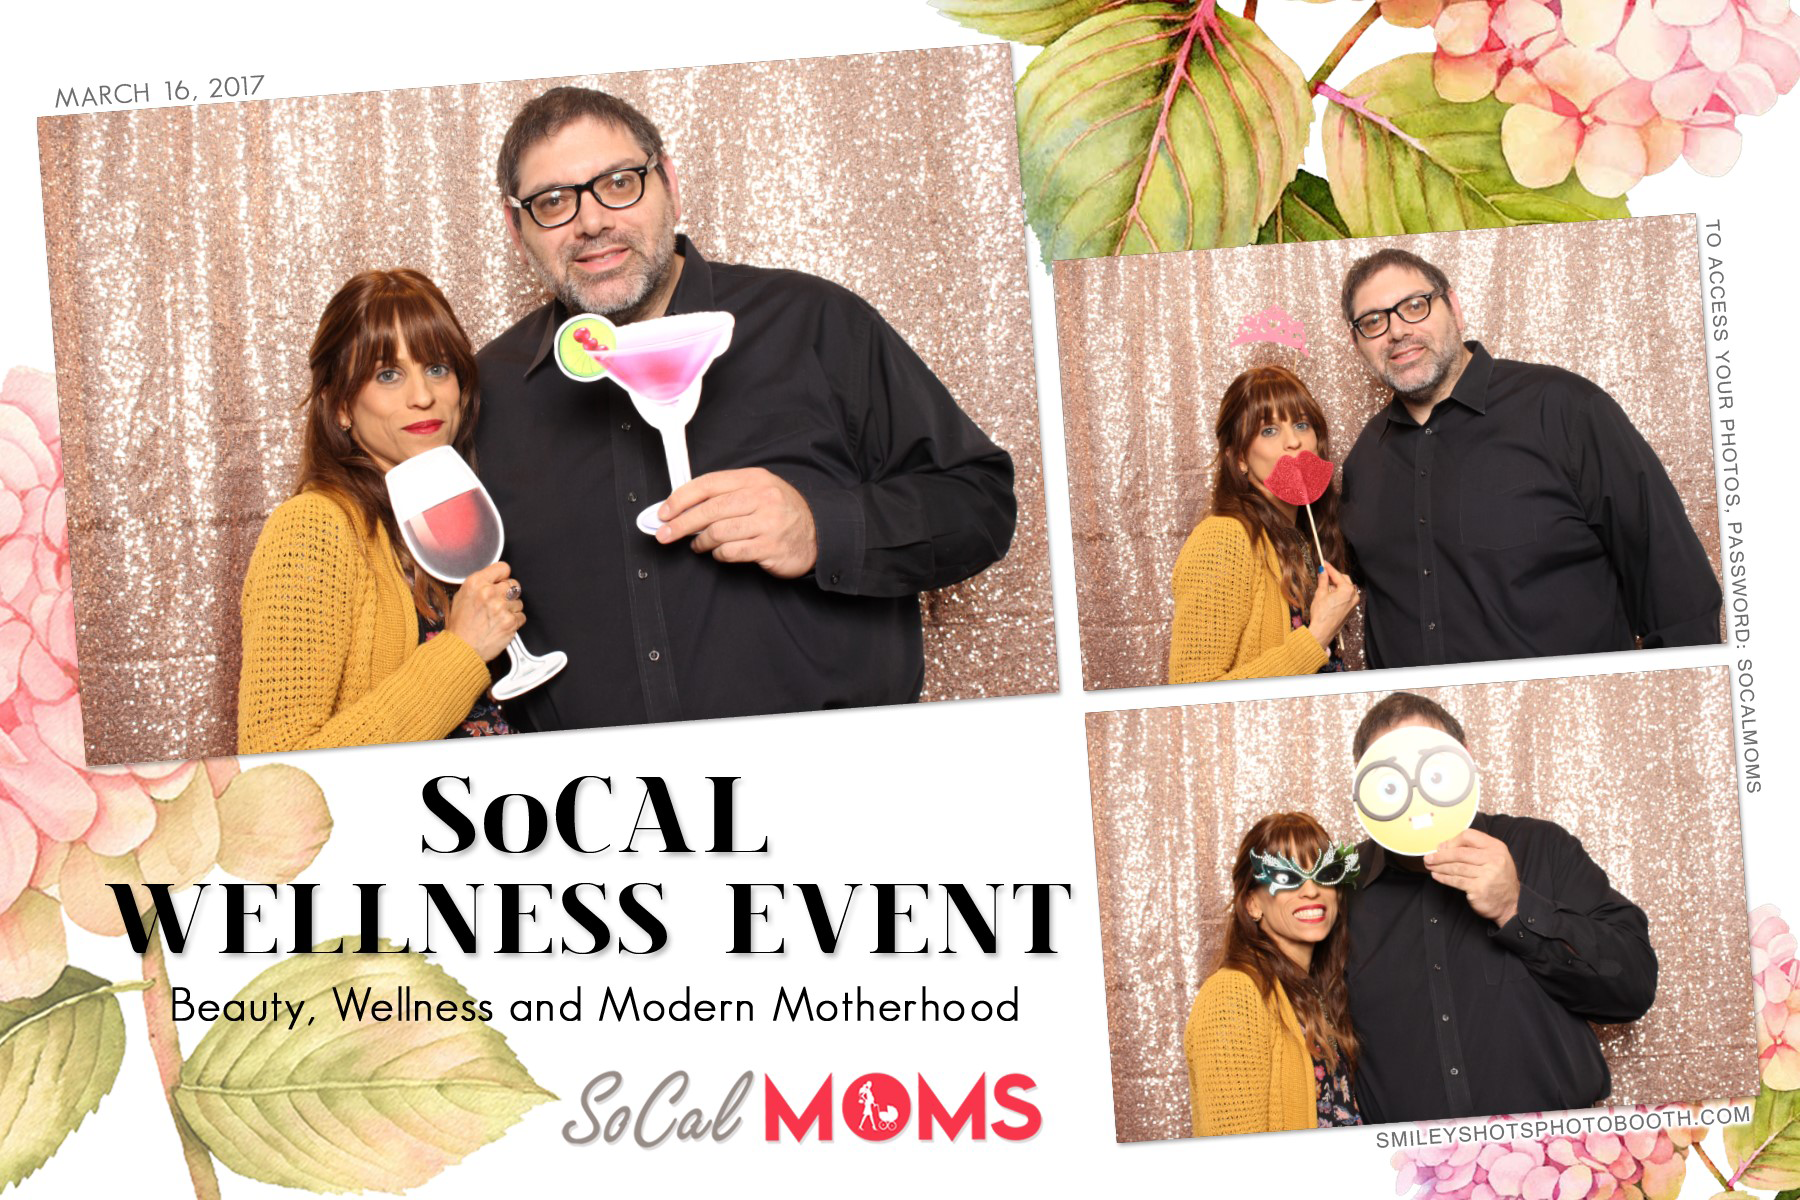 Socal Wellness Event Socal Moms Smiley Shots Photo Booth Photobooth (13).png